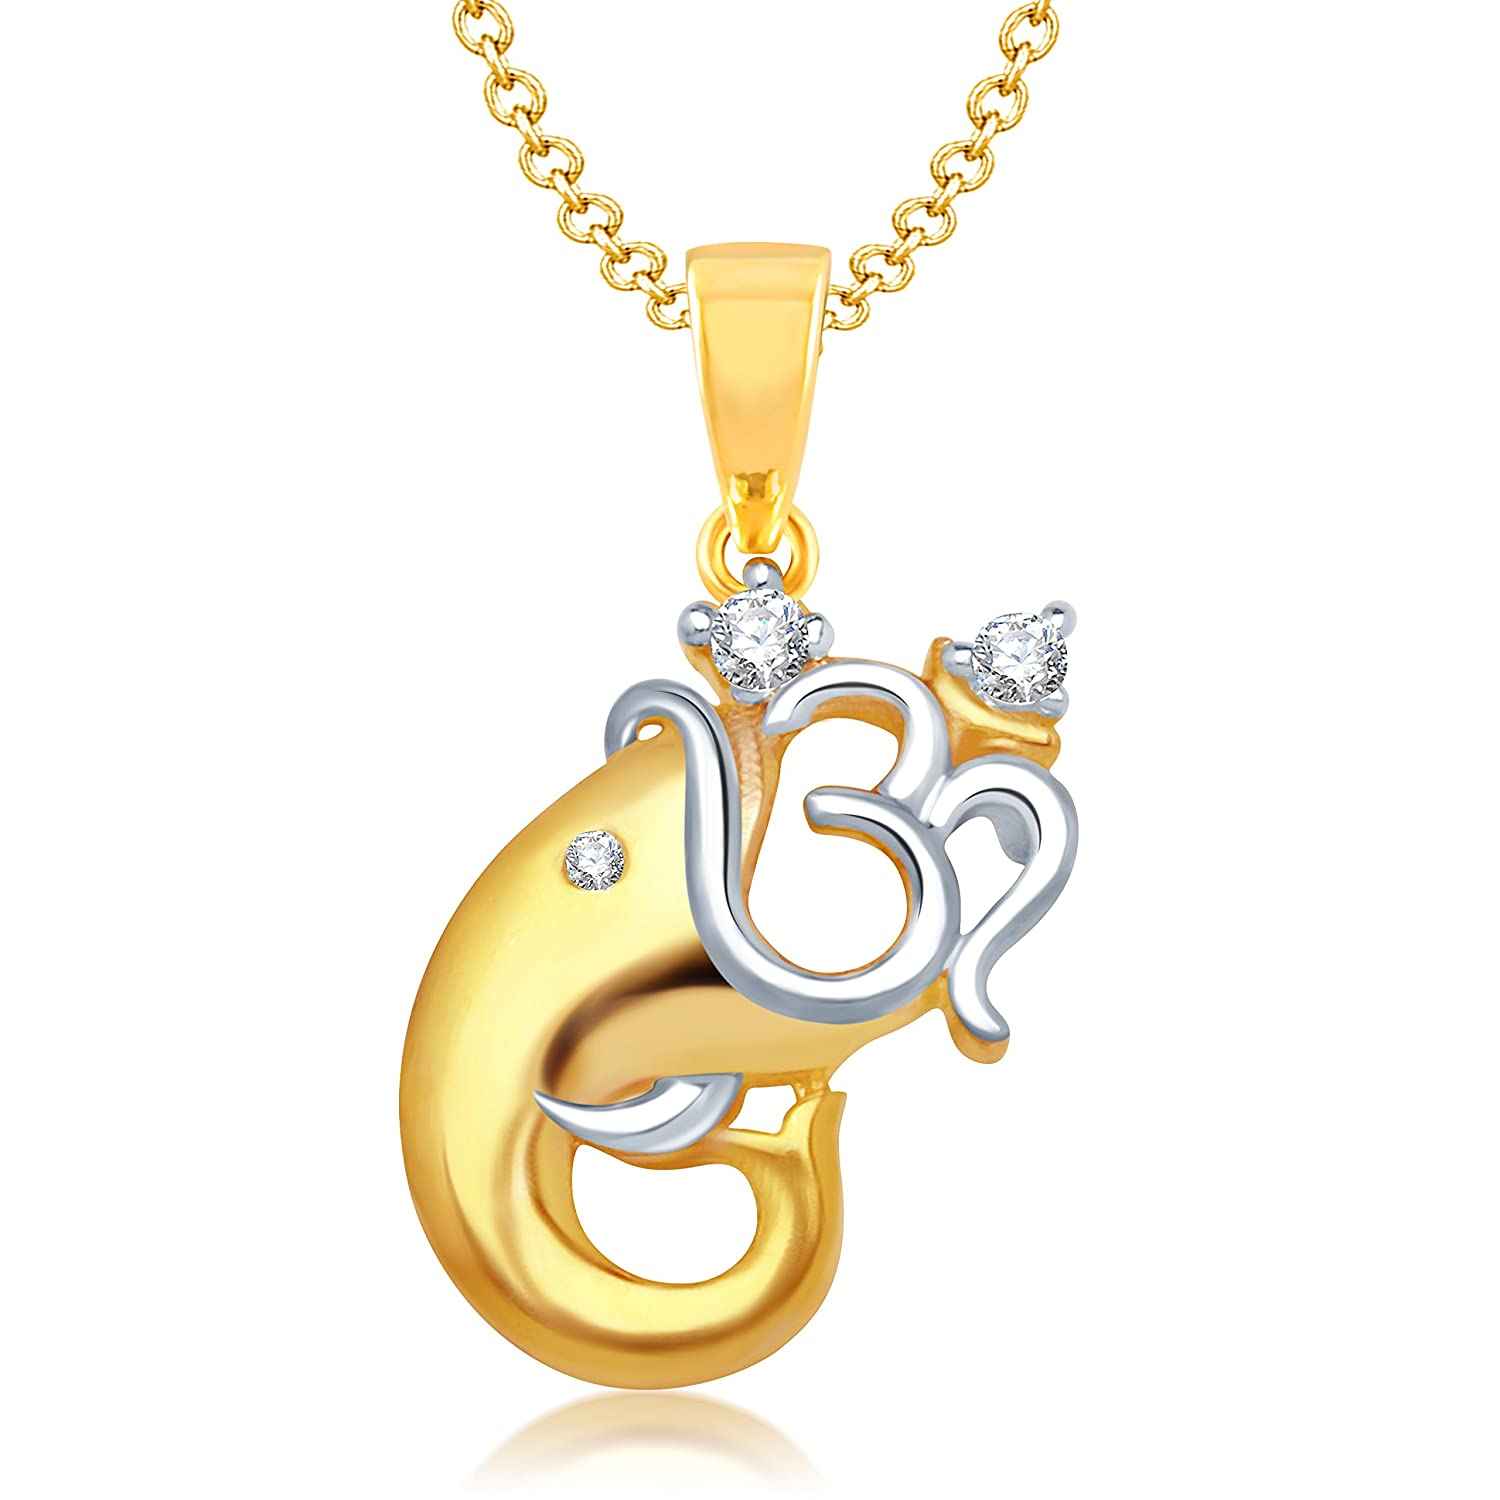 Buy vk jewels om vakratund gold and rhodium plated alloy god buy vk jewels om vakratund gold and rhodium plated alloy god pendant for men women made with cubic zirconia p1128g vkp1128g online at low prices in mozeypictures Image collections